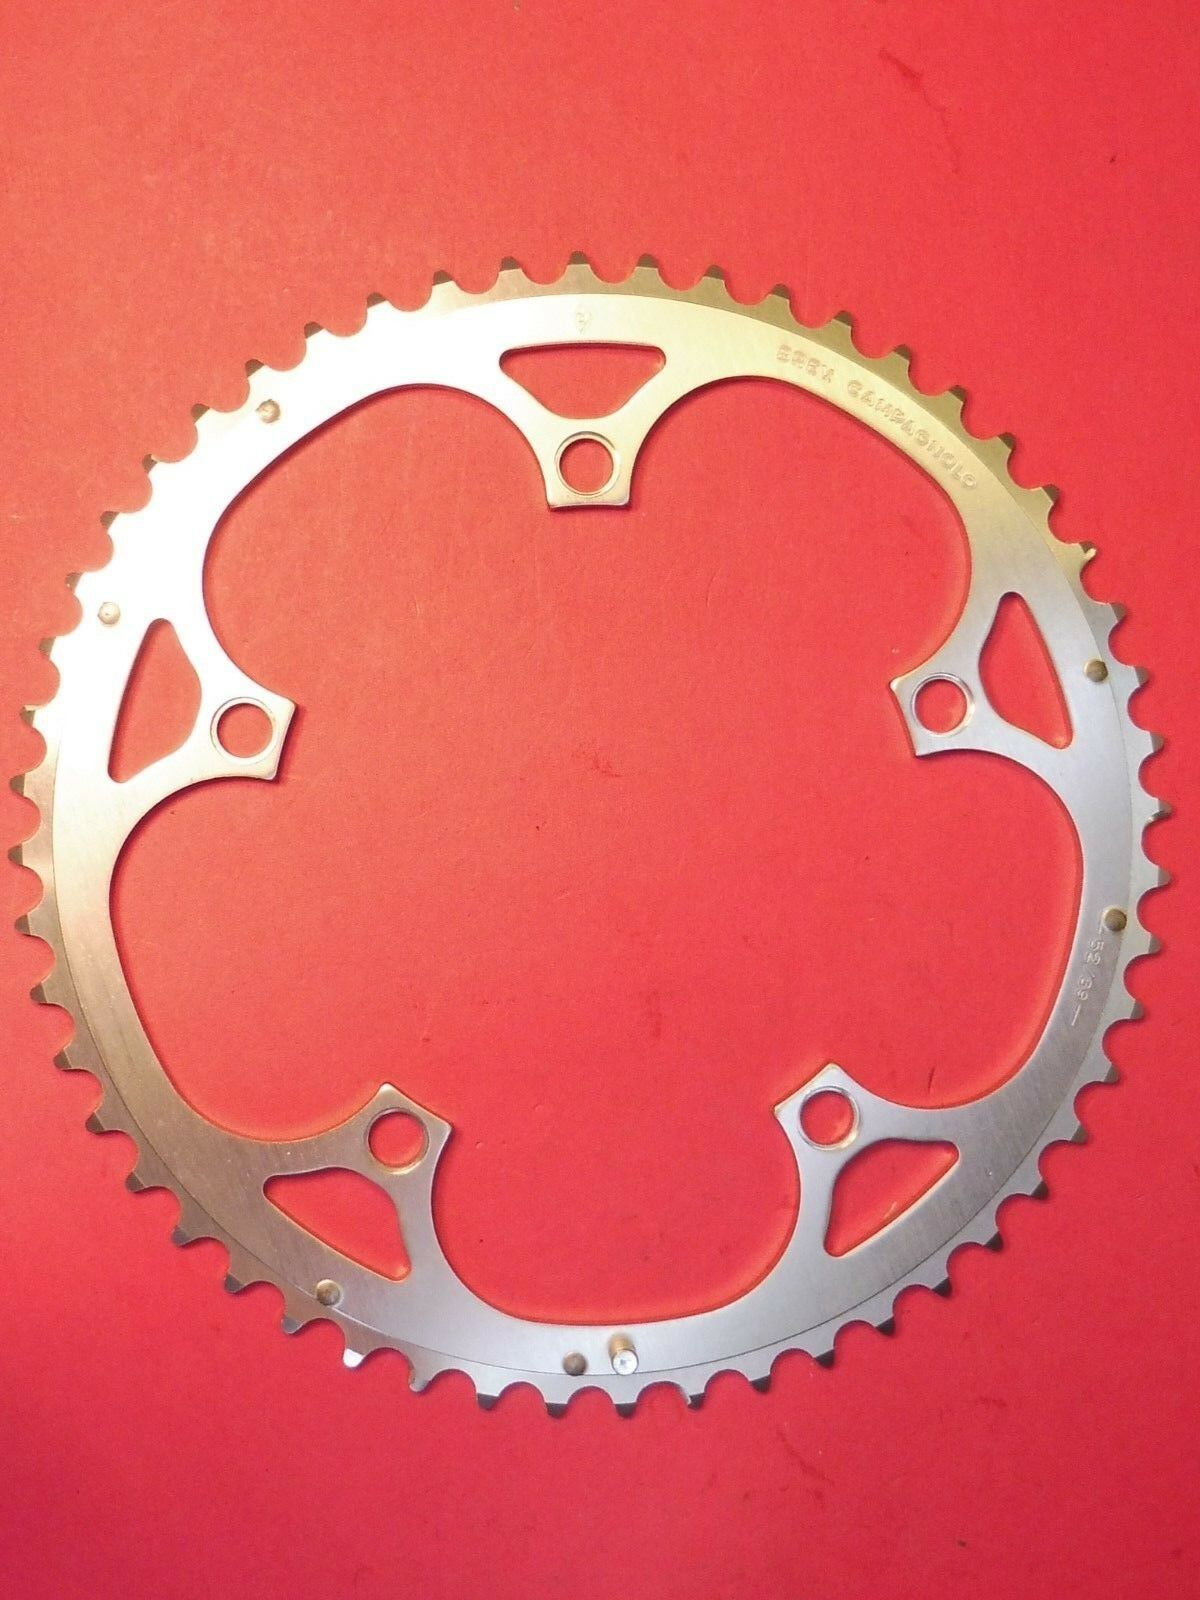 Campagnolo Chorus   Athena - 8  Speed   135 PCD 52 t chainring   NOS L'eroica  professional integrated online shopping mall